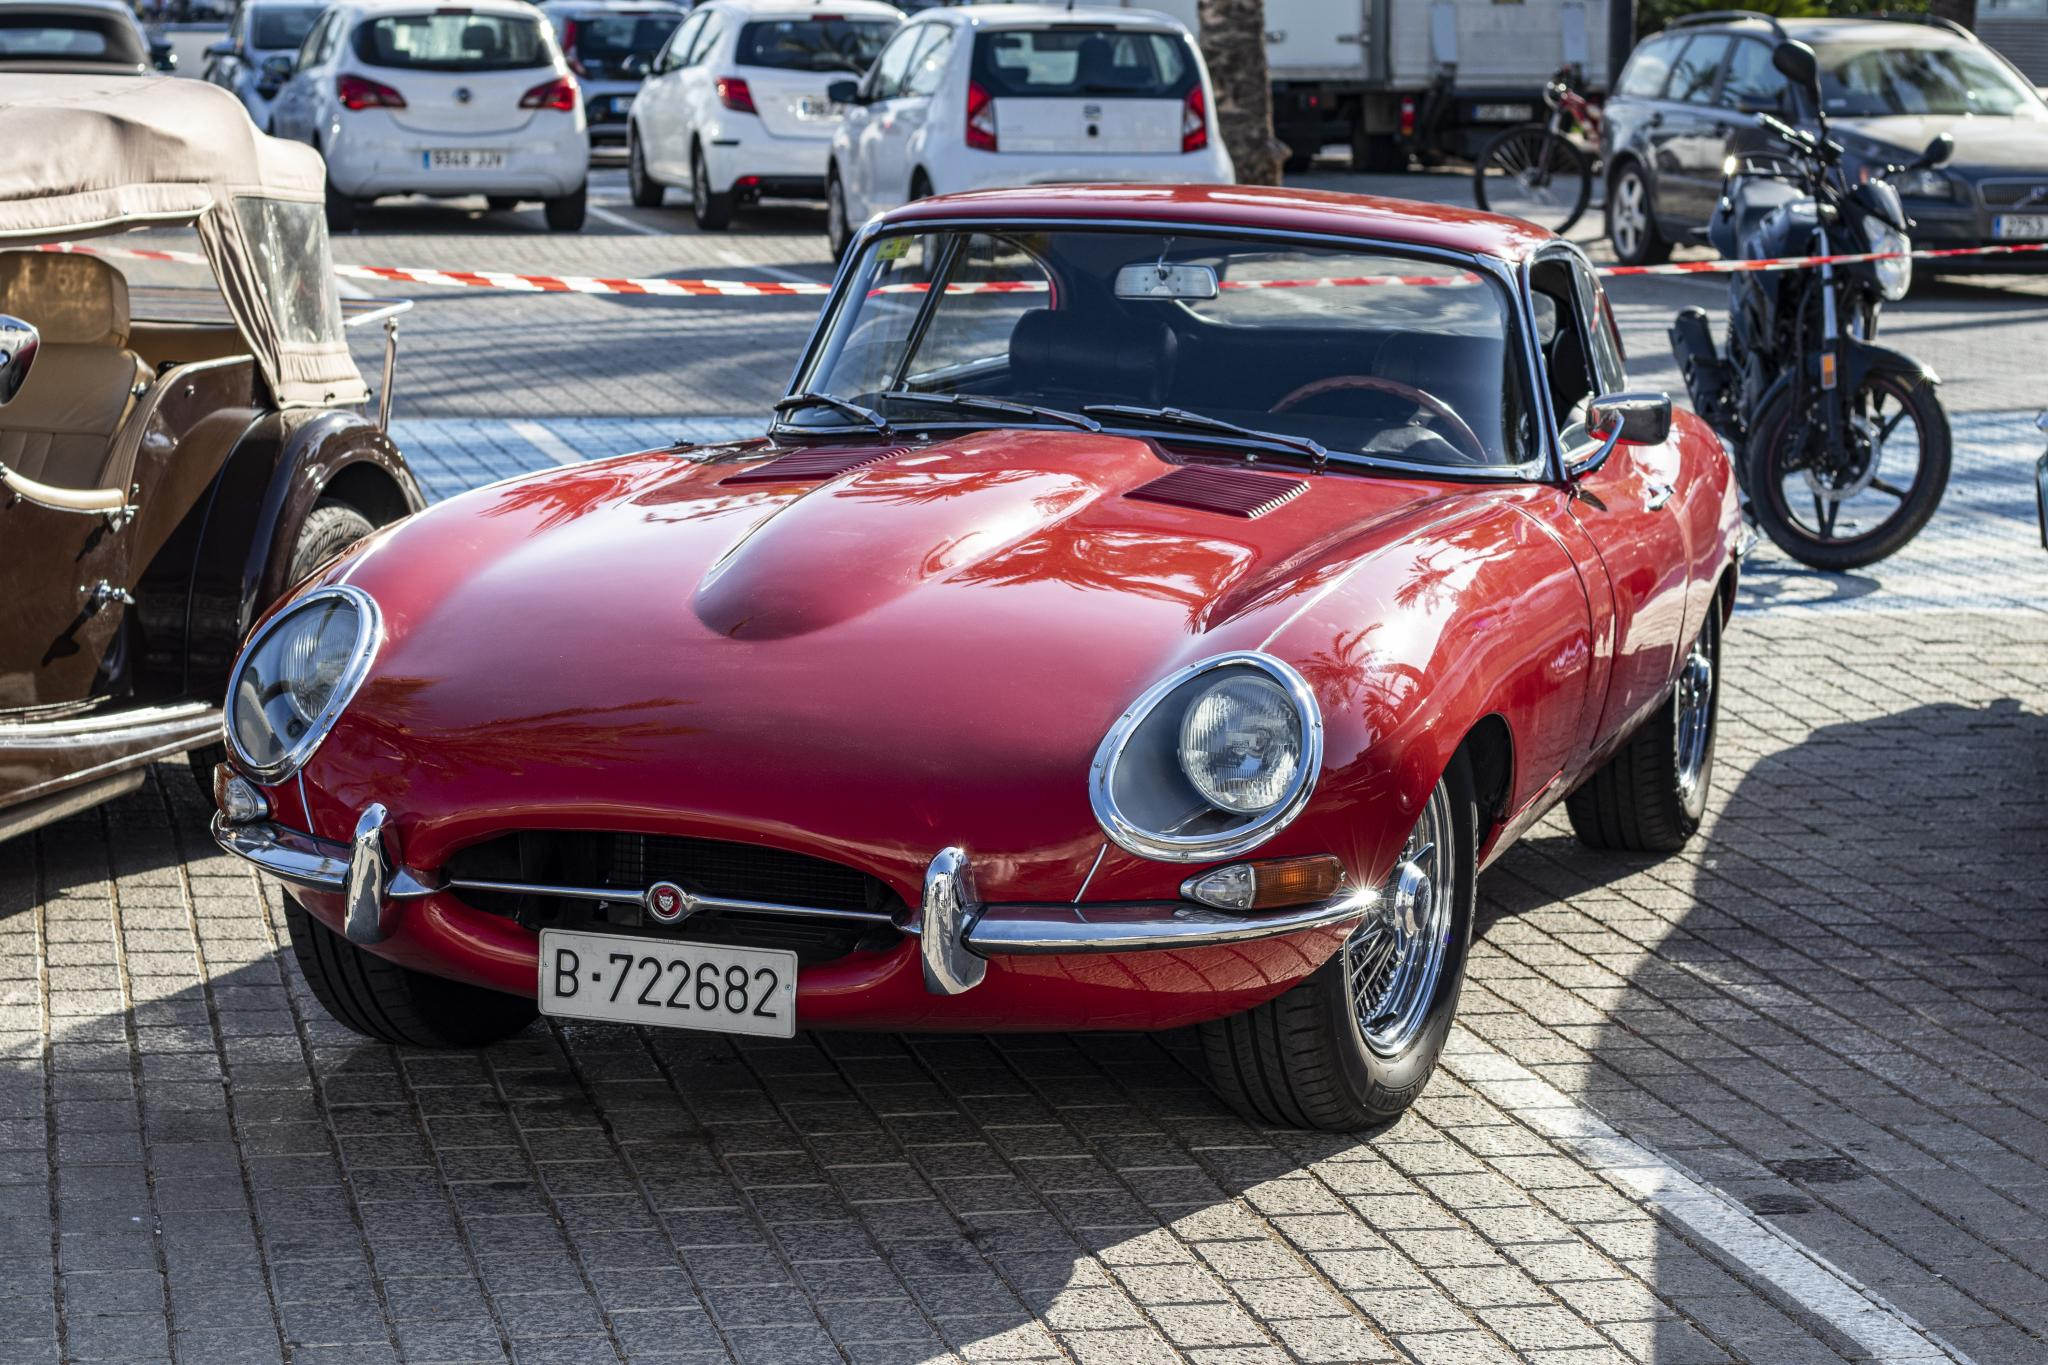 Santa is quite partial to E-Types, I've seen him in one on lots of Xmas cards